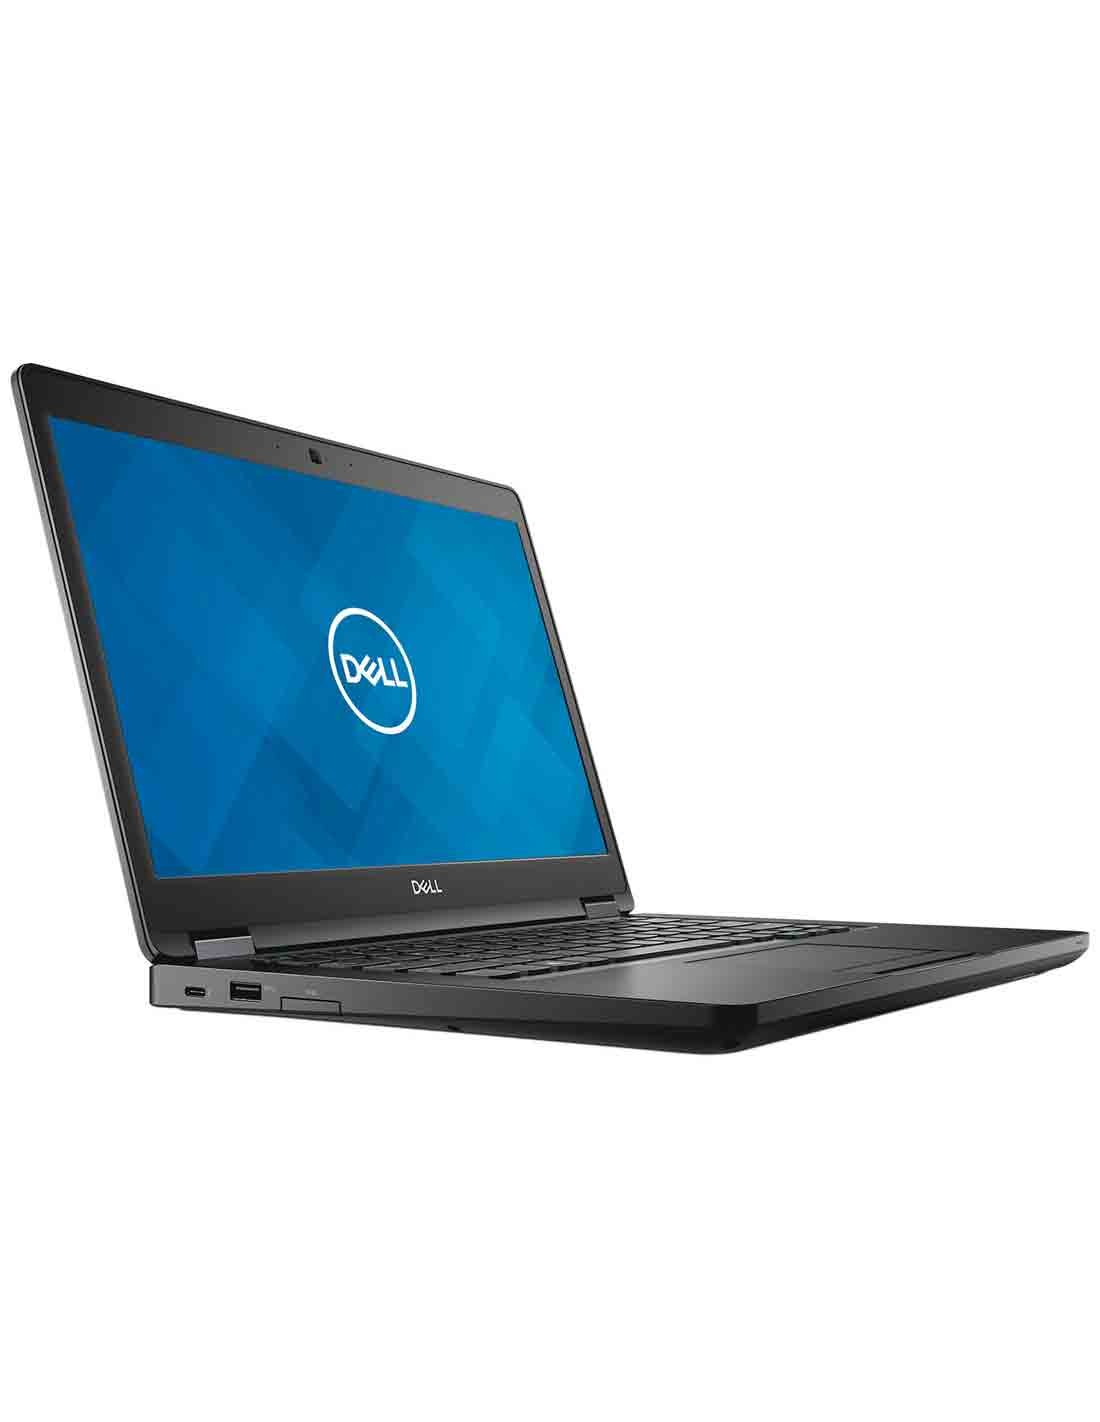 Dell Latitude 5580 Windows 10 Pro 64 8GB at the cheapest price in Dubai online shop